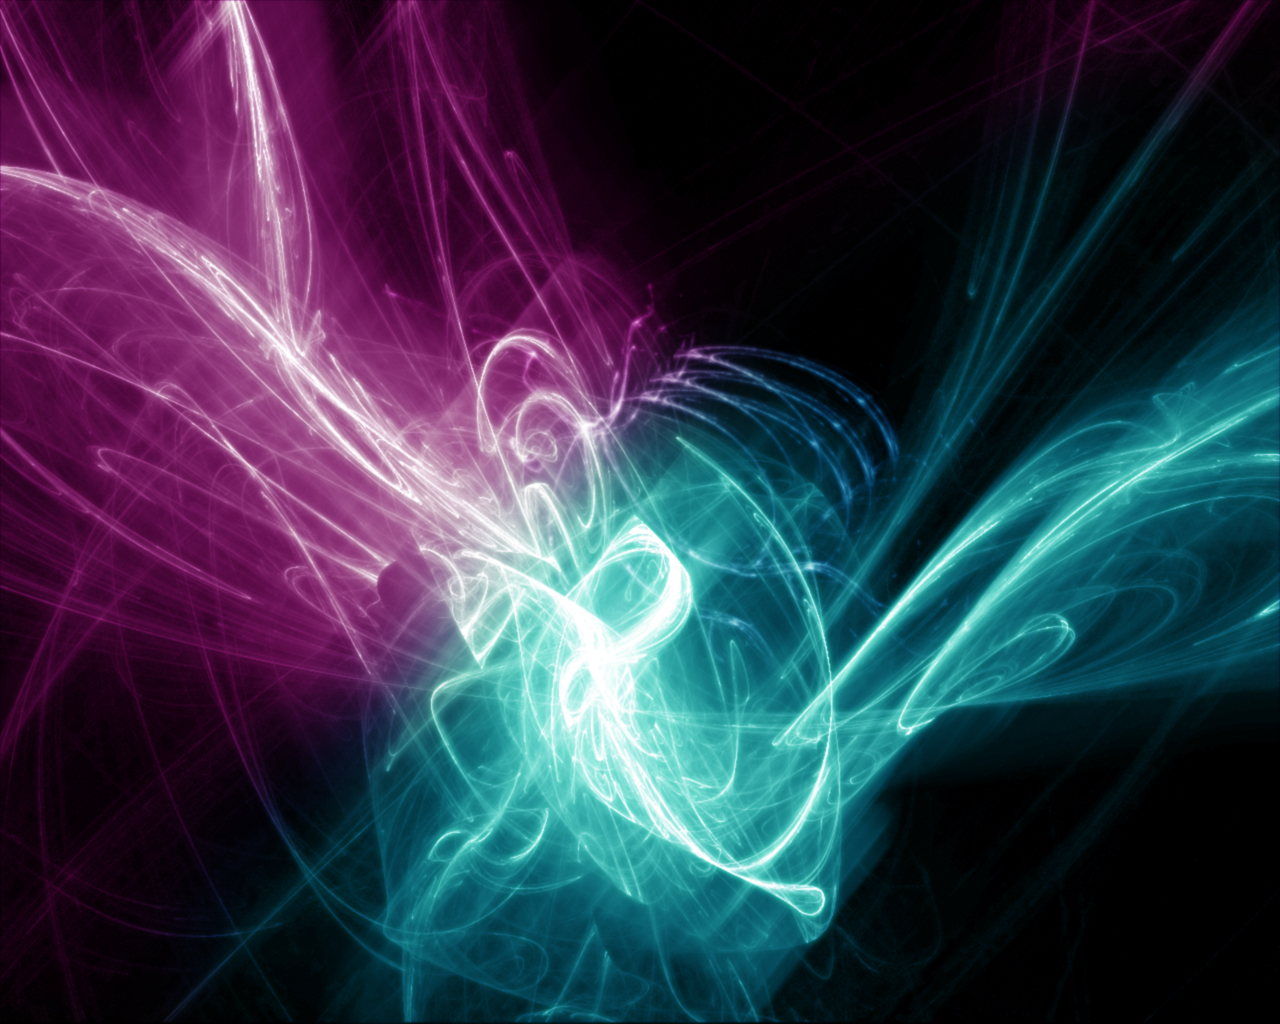 Abstract Glowing Wallpaper 4672